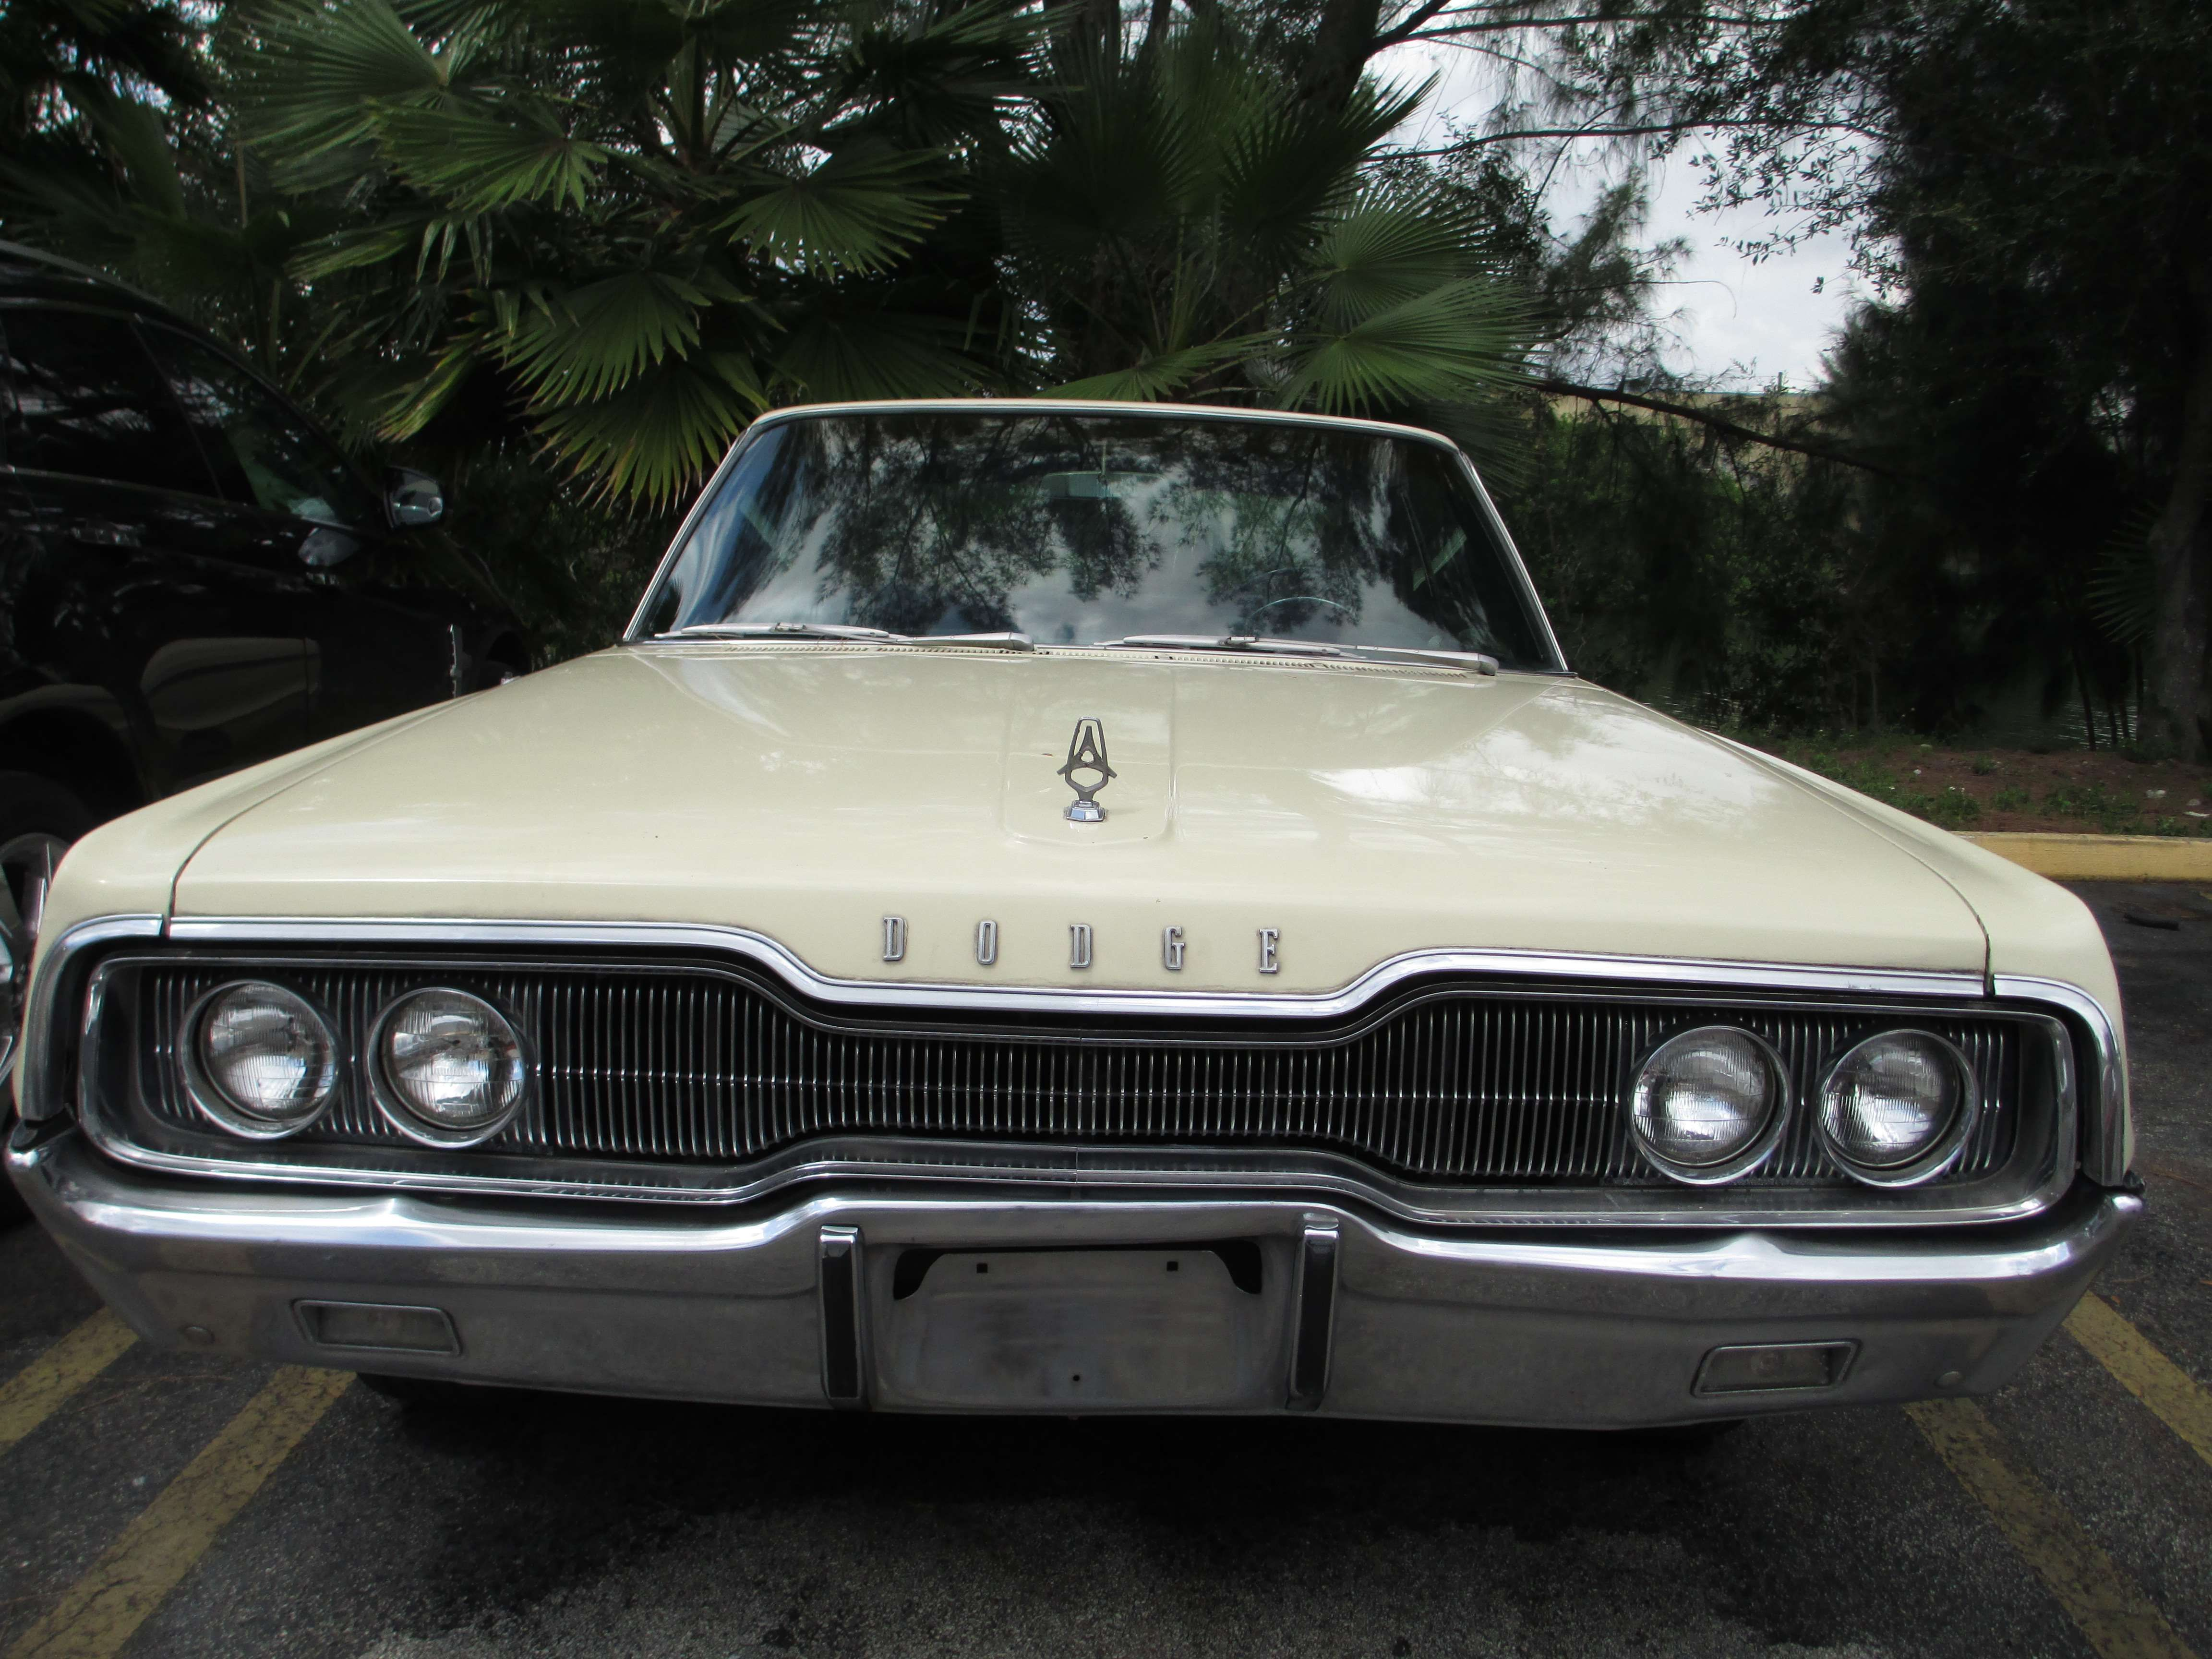 Used 1966 Dodge Polara for Sale ($7,000) at Miami, FL | Colins car ...